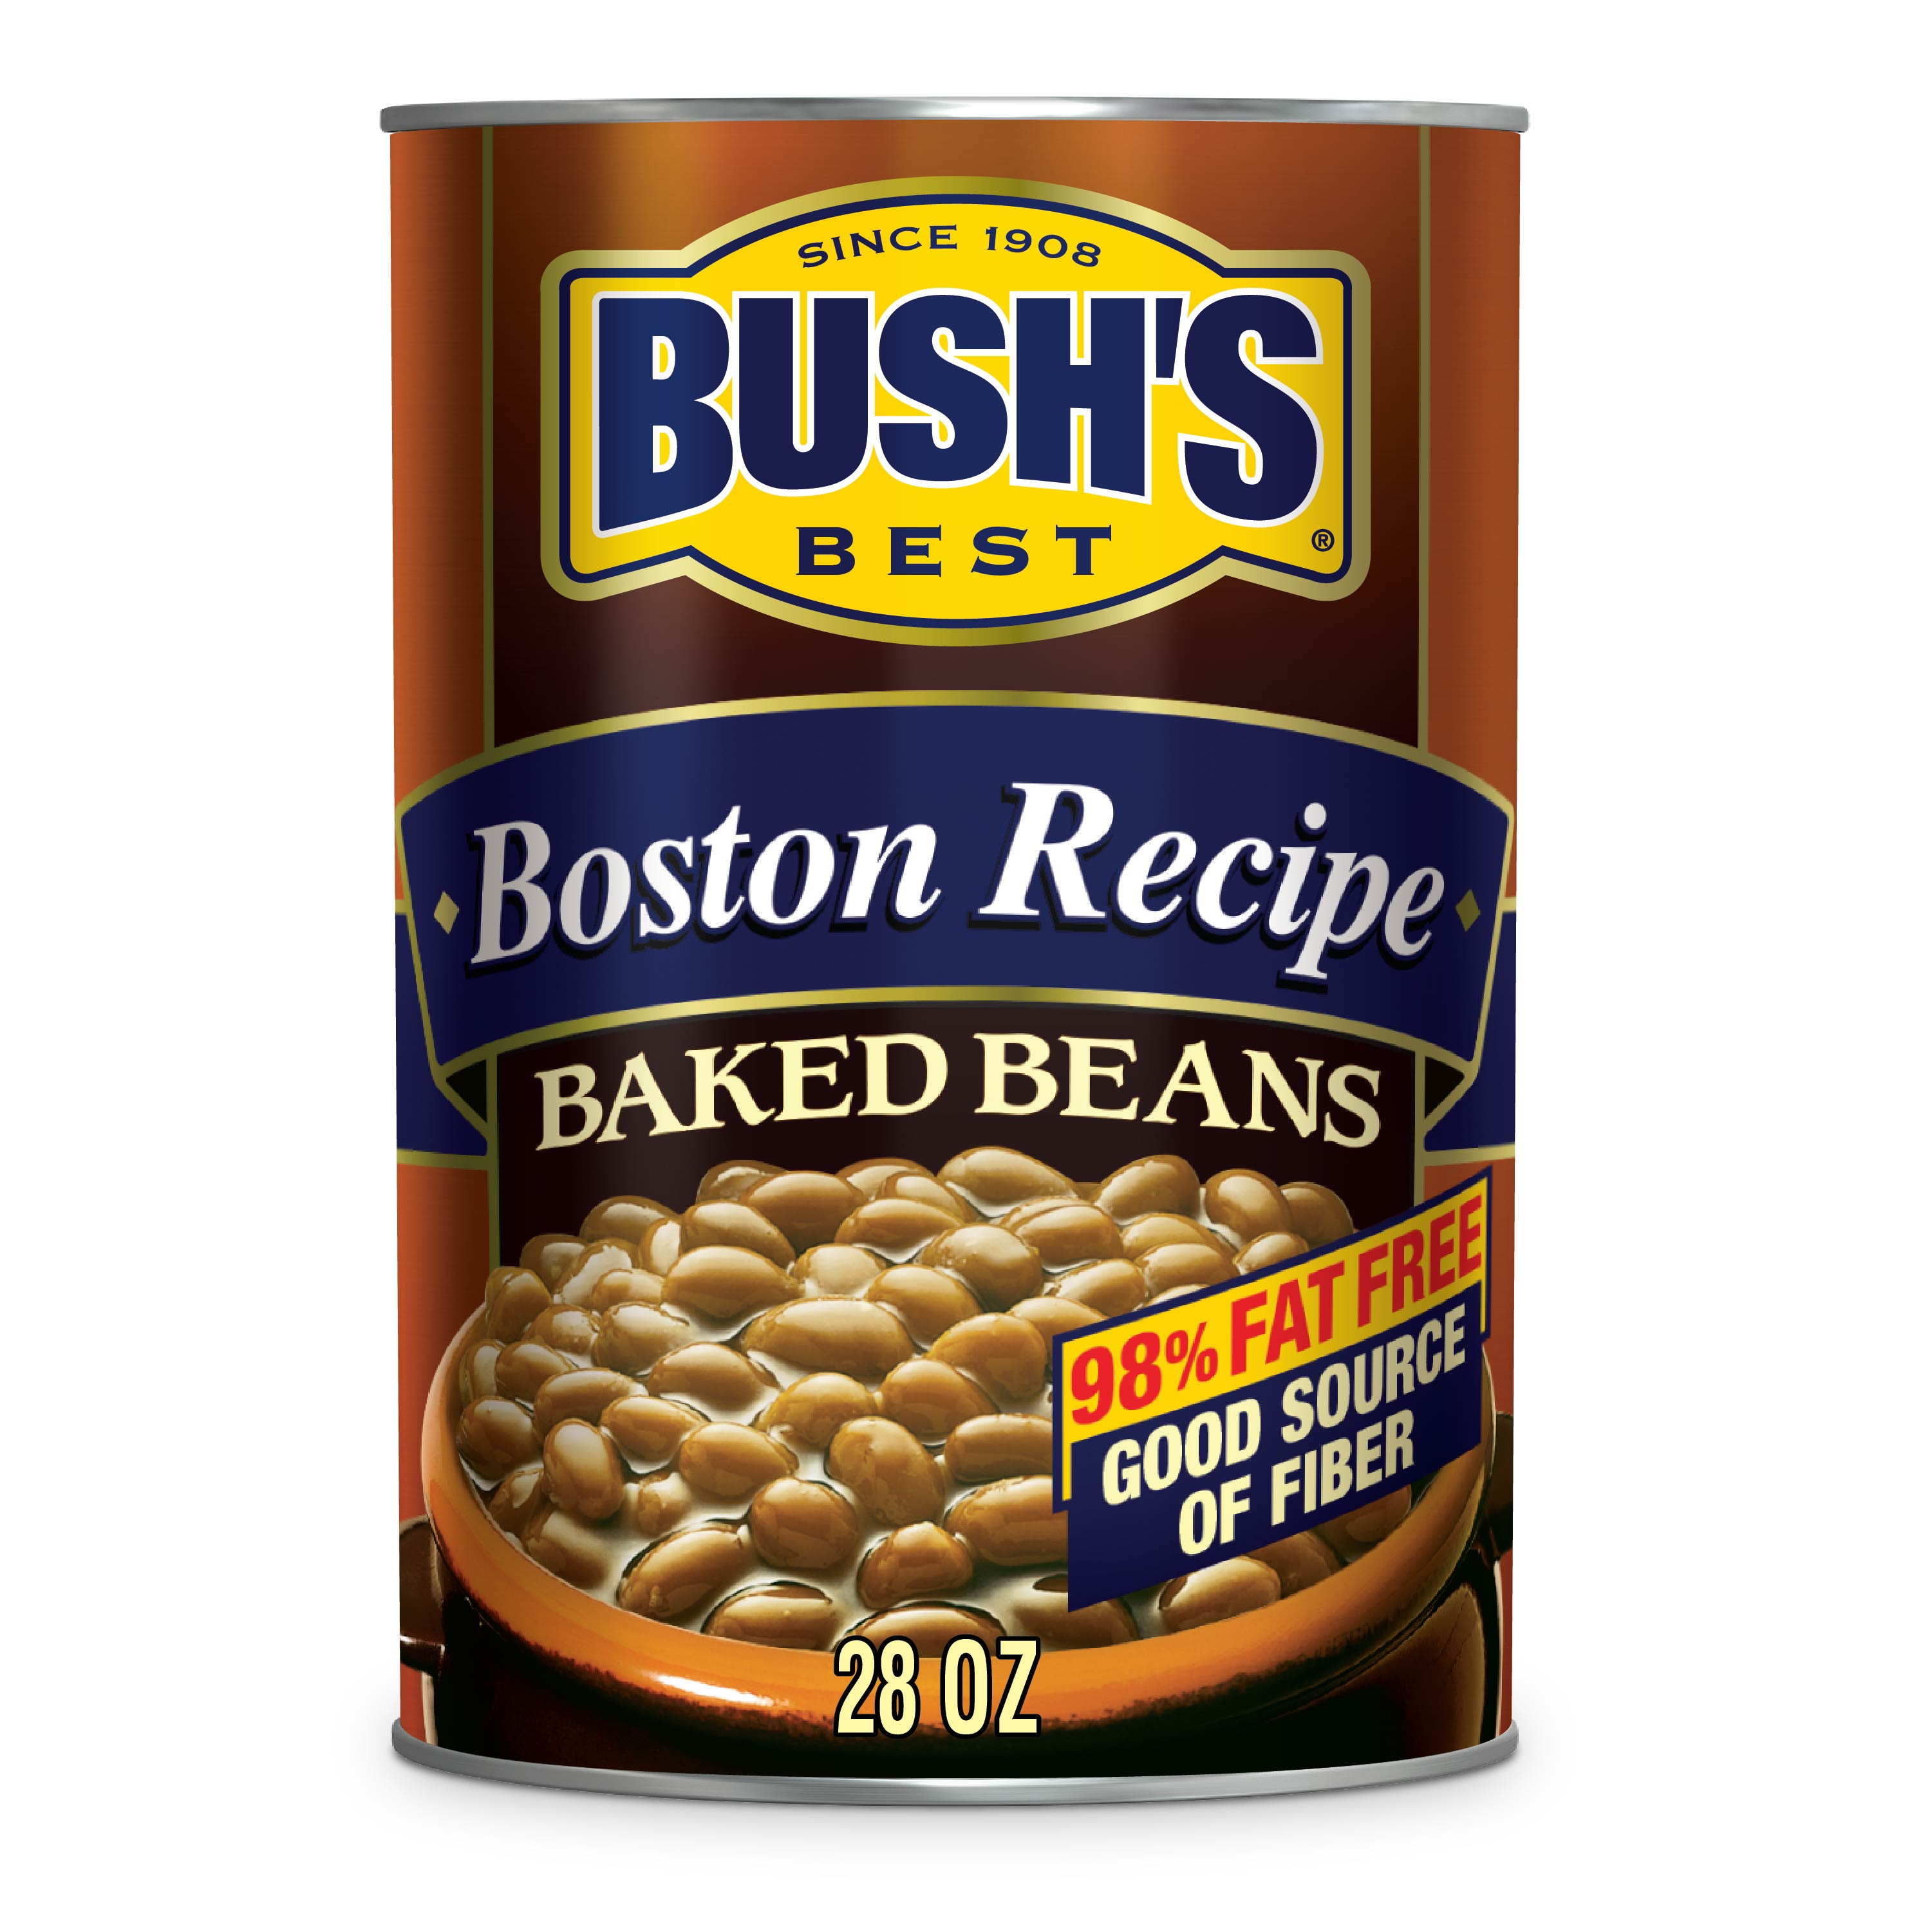 Bush's Baked Beans could provide a sponsorship to the Boston Bruins' helmets.